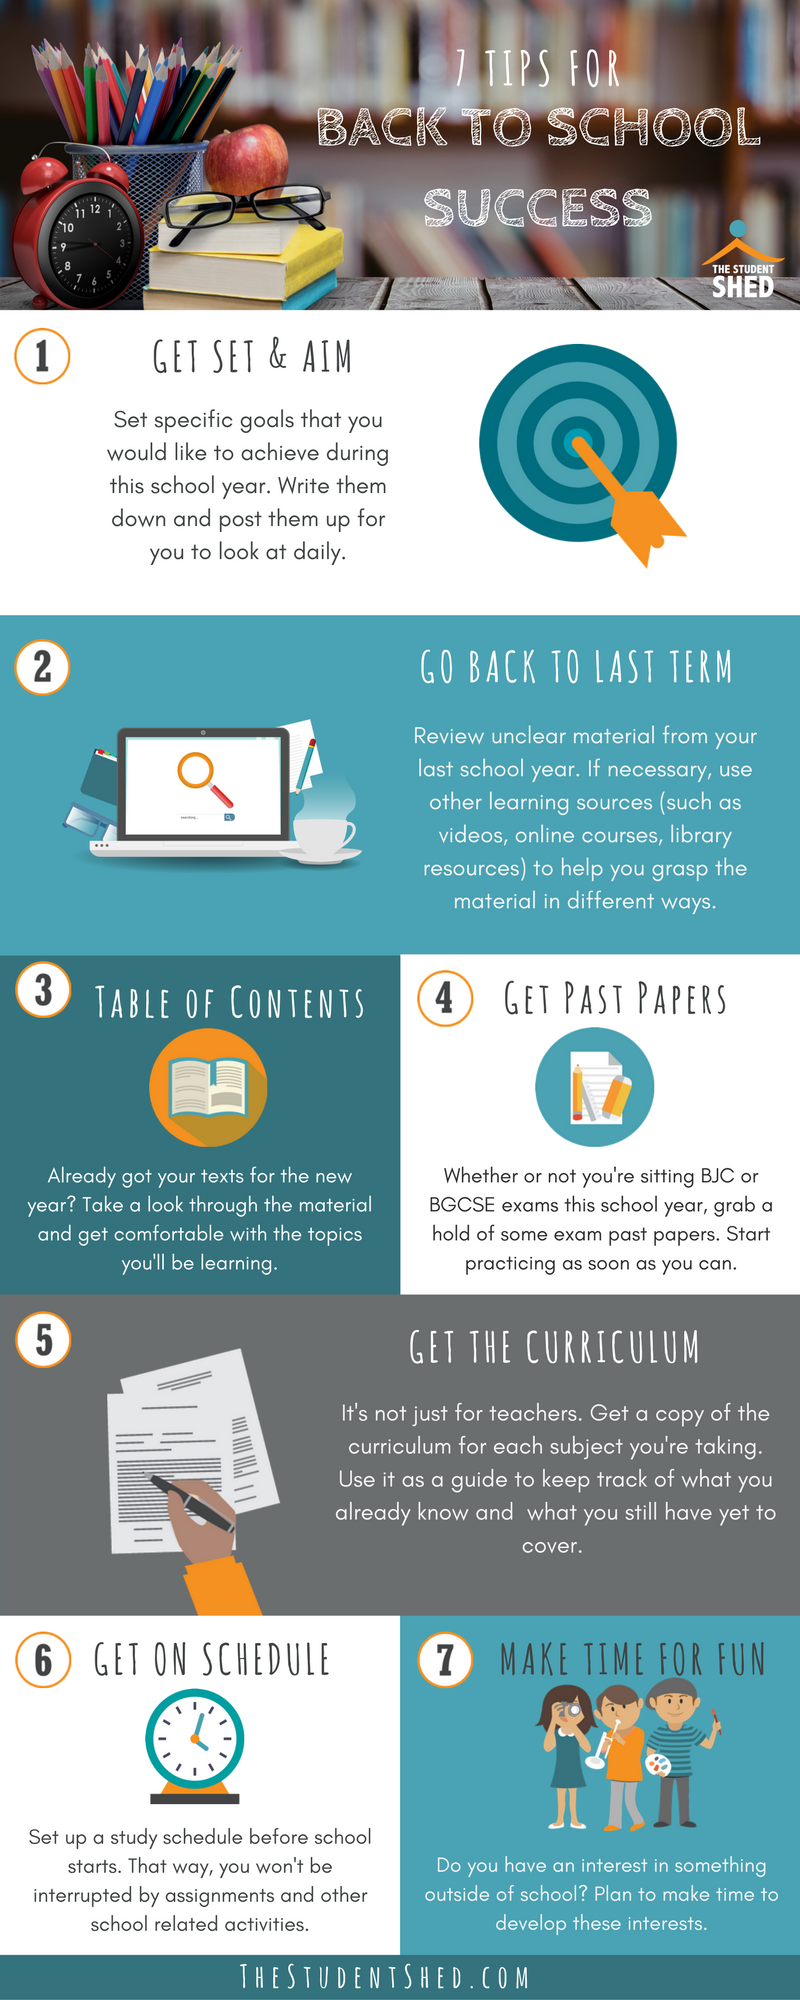 7 Tips for Back to School Success